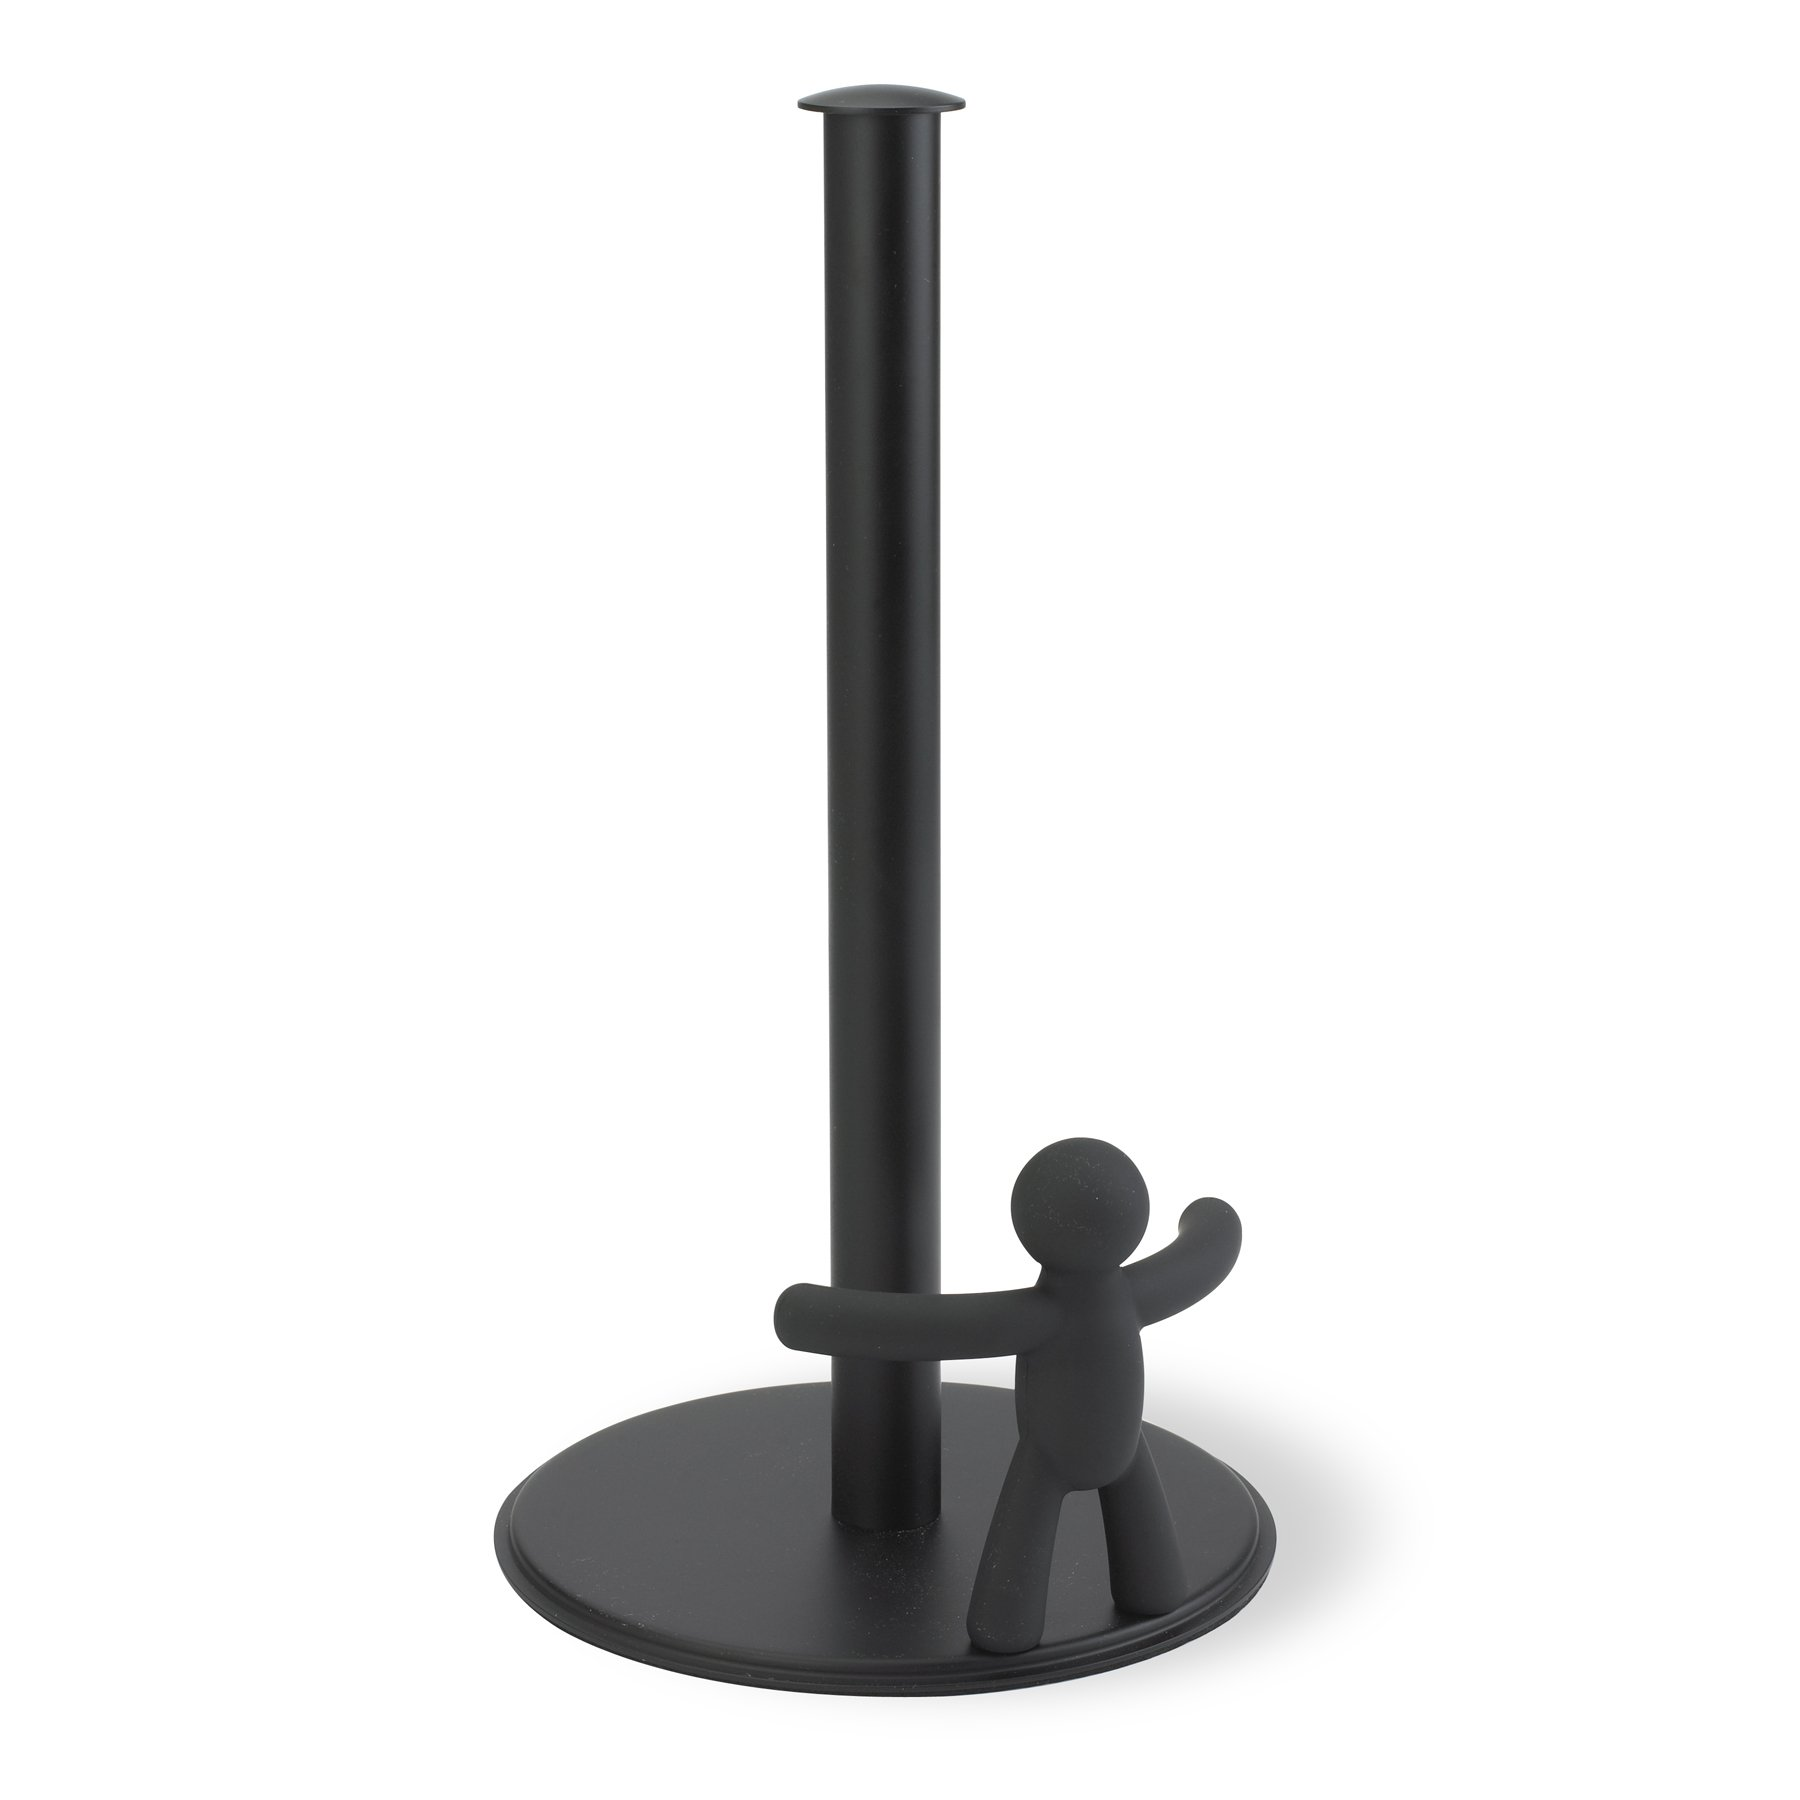 Umbra Buddy Paper Towel Holder With Fun & Functional Design - Original Molded Soft Touch Black Kitchen Paper Tug - Provides One-Handed Tearing Keeps Paper Towels Handy & Tidy and Roll From Unraveling